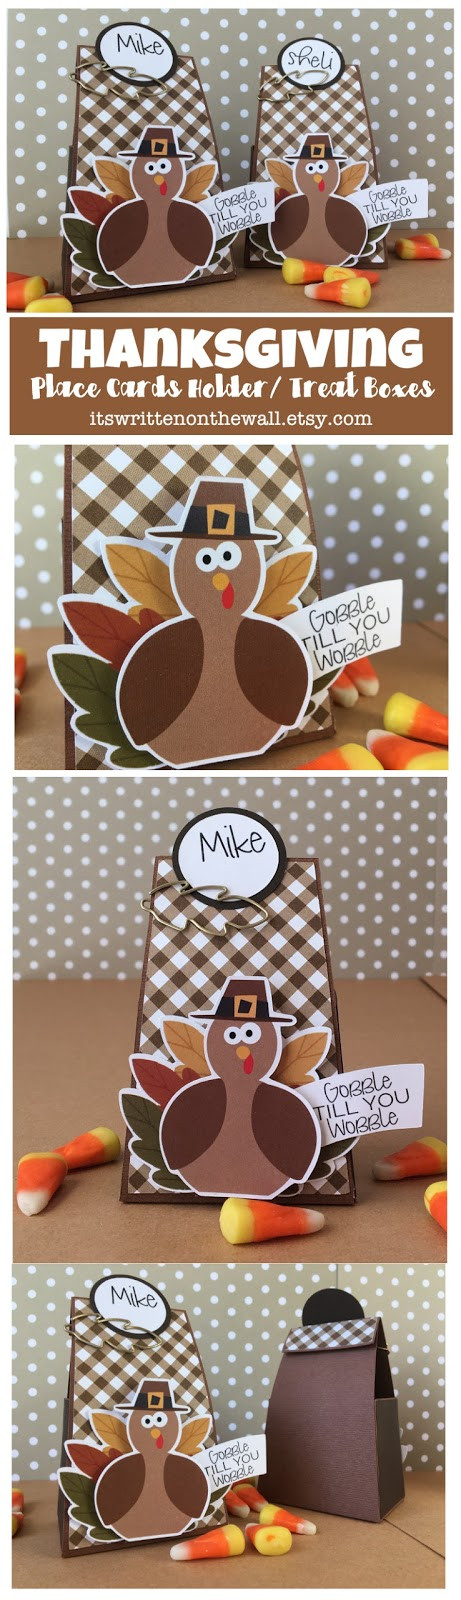 Thanksgiving Gift Ideas For Employees  Download Thanksgiving Gift Ideas For Employees